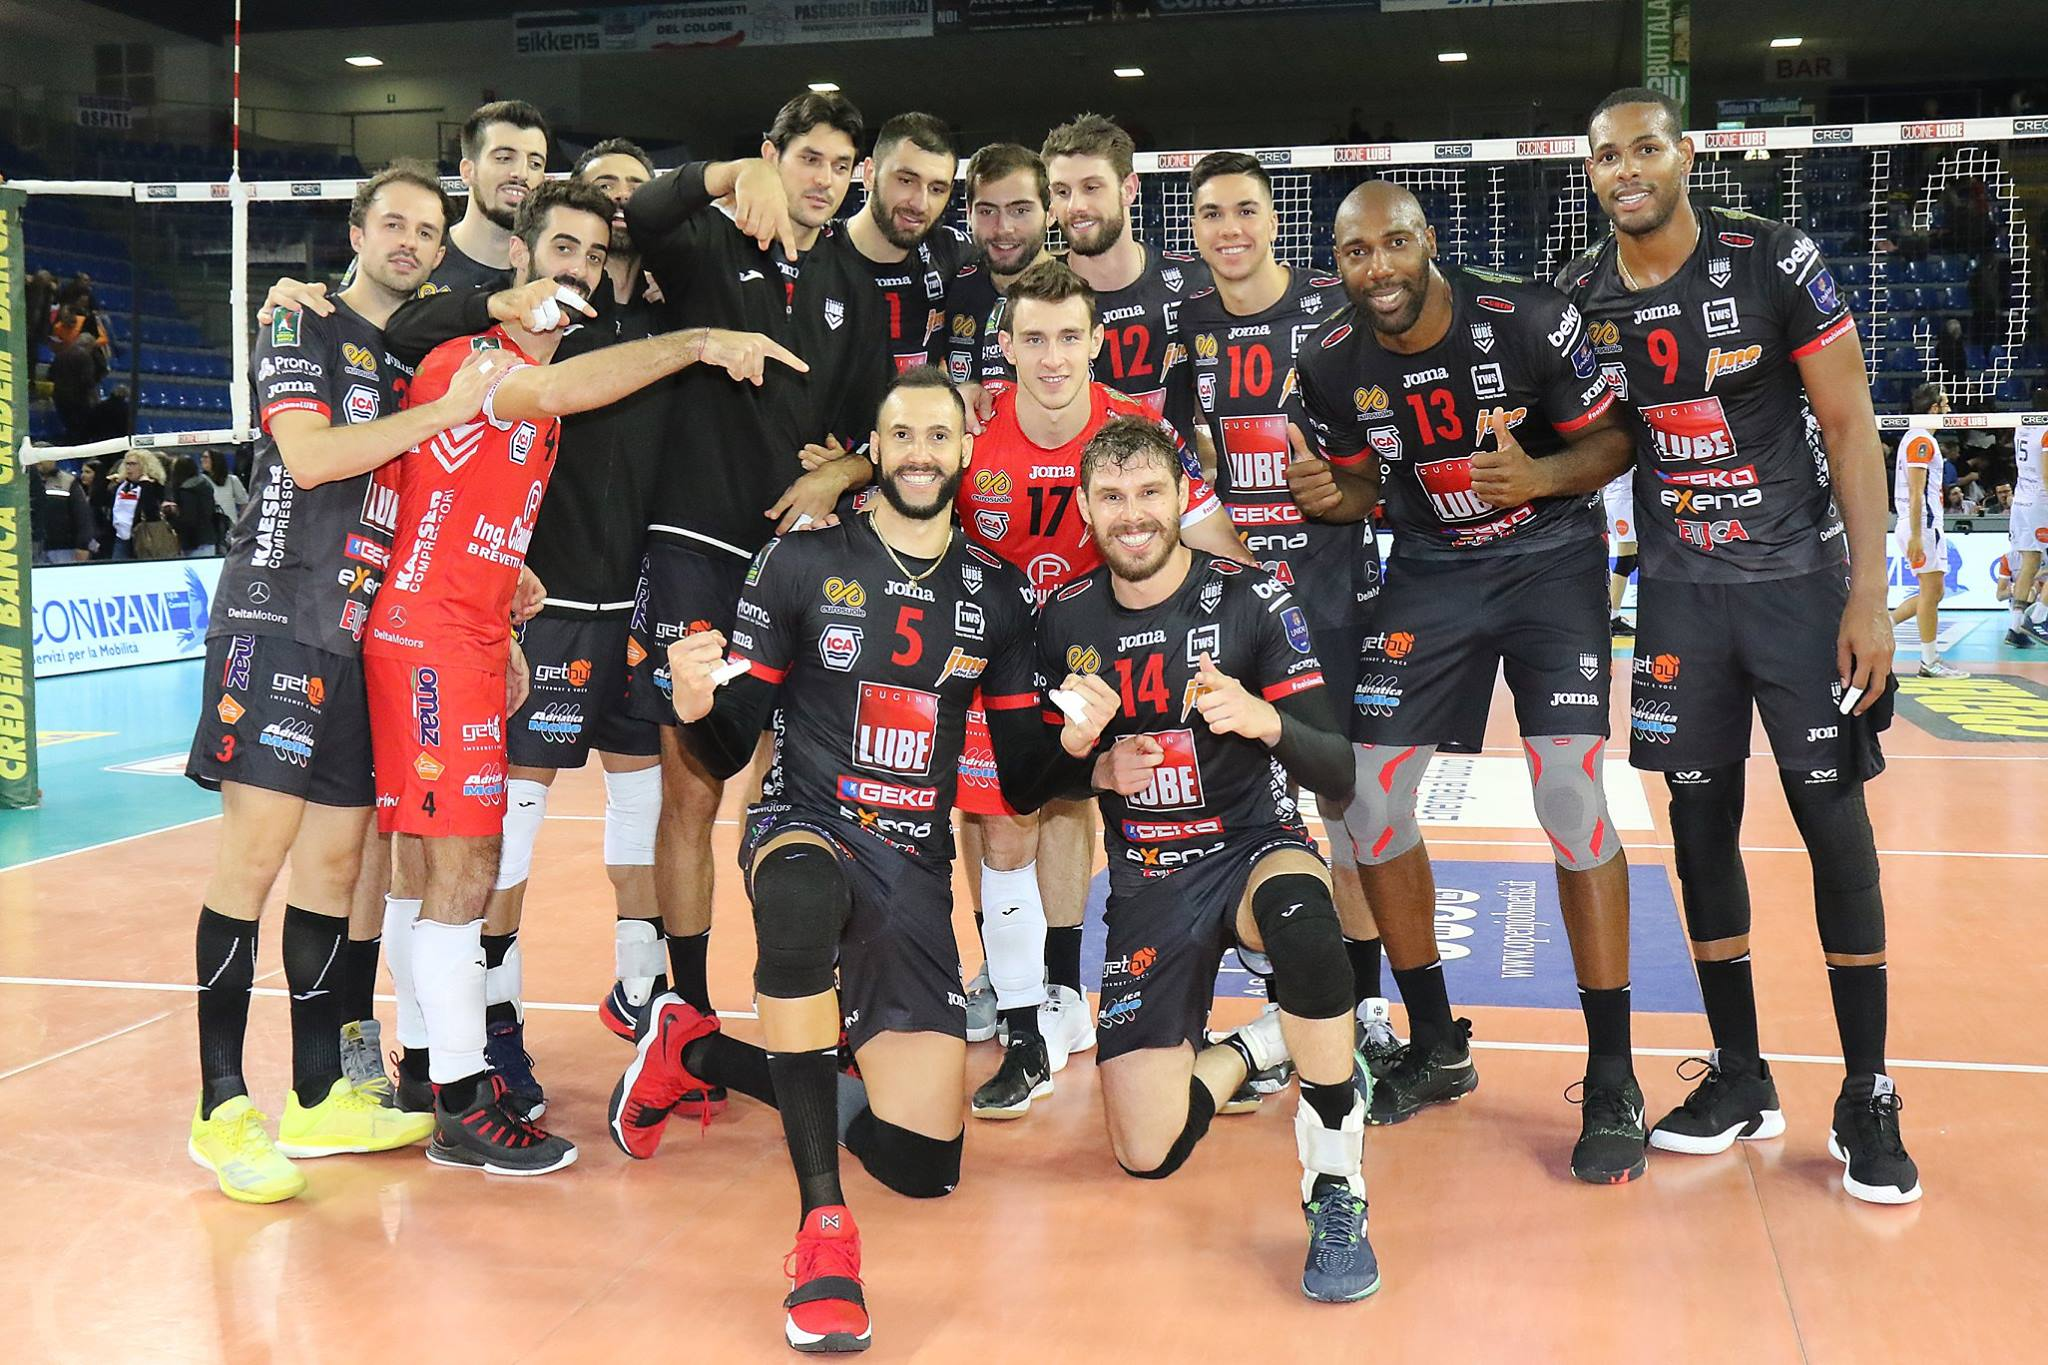 Volley-Serie-A1-pronostico-23-ottobre-2019-analisi-e-pronostico